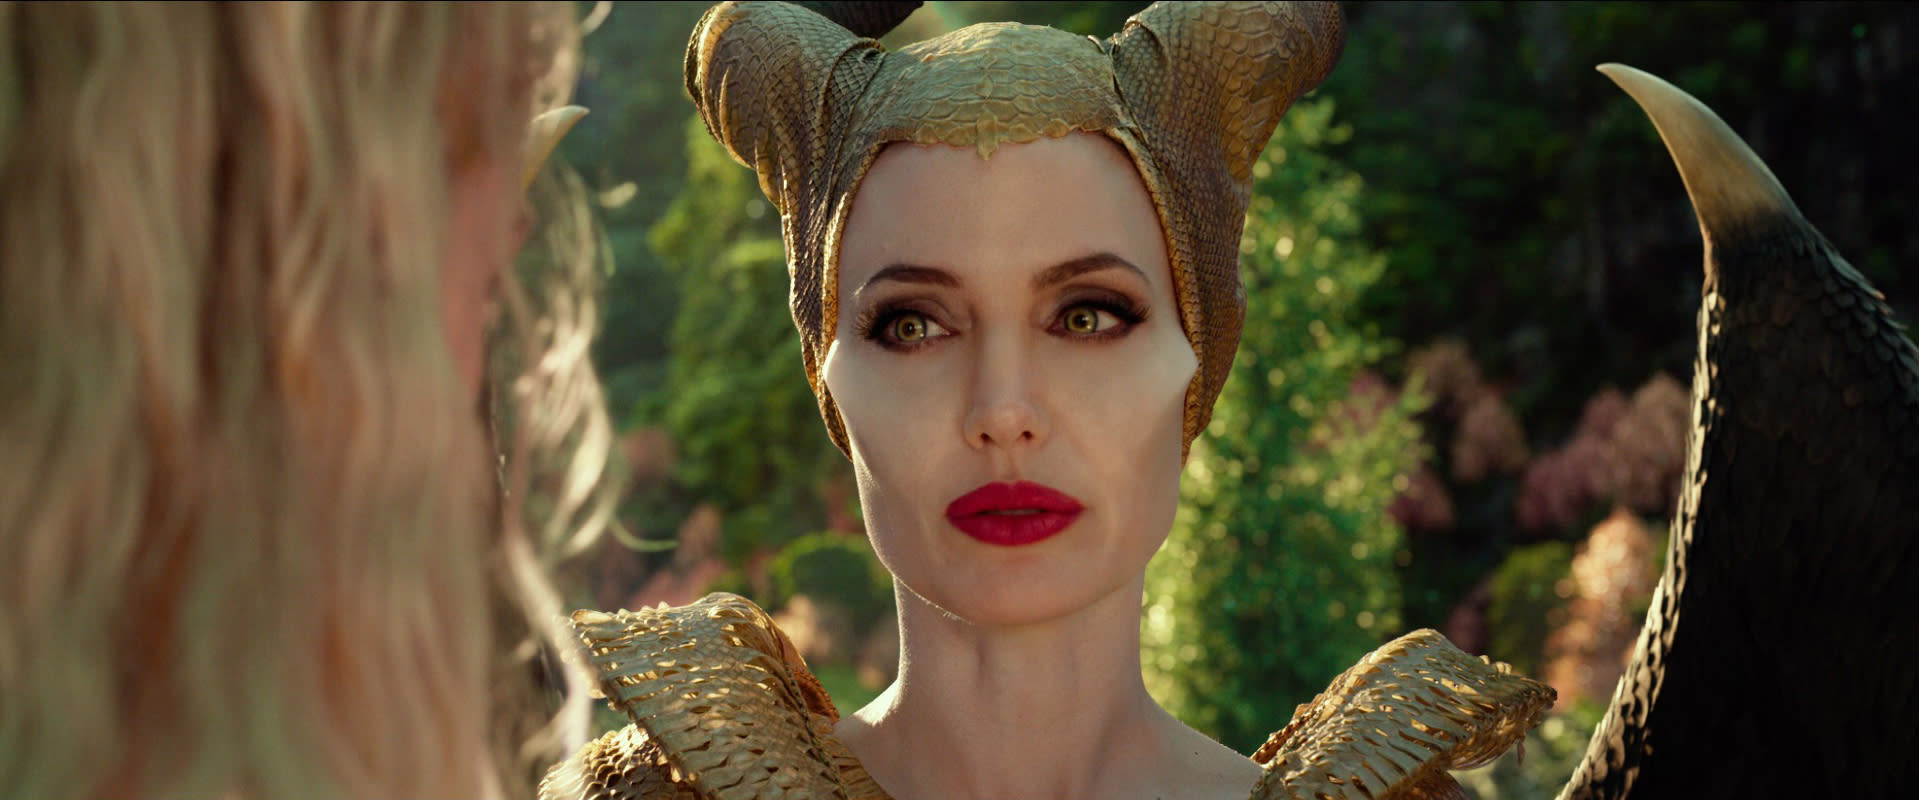 Maleficent Mistress Of Evil Trailer The Mother Of All